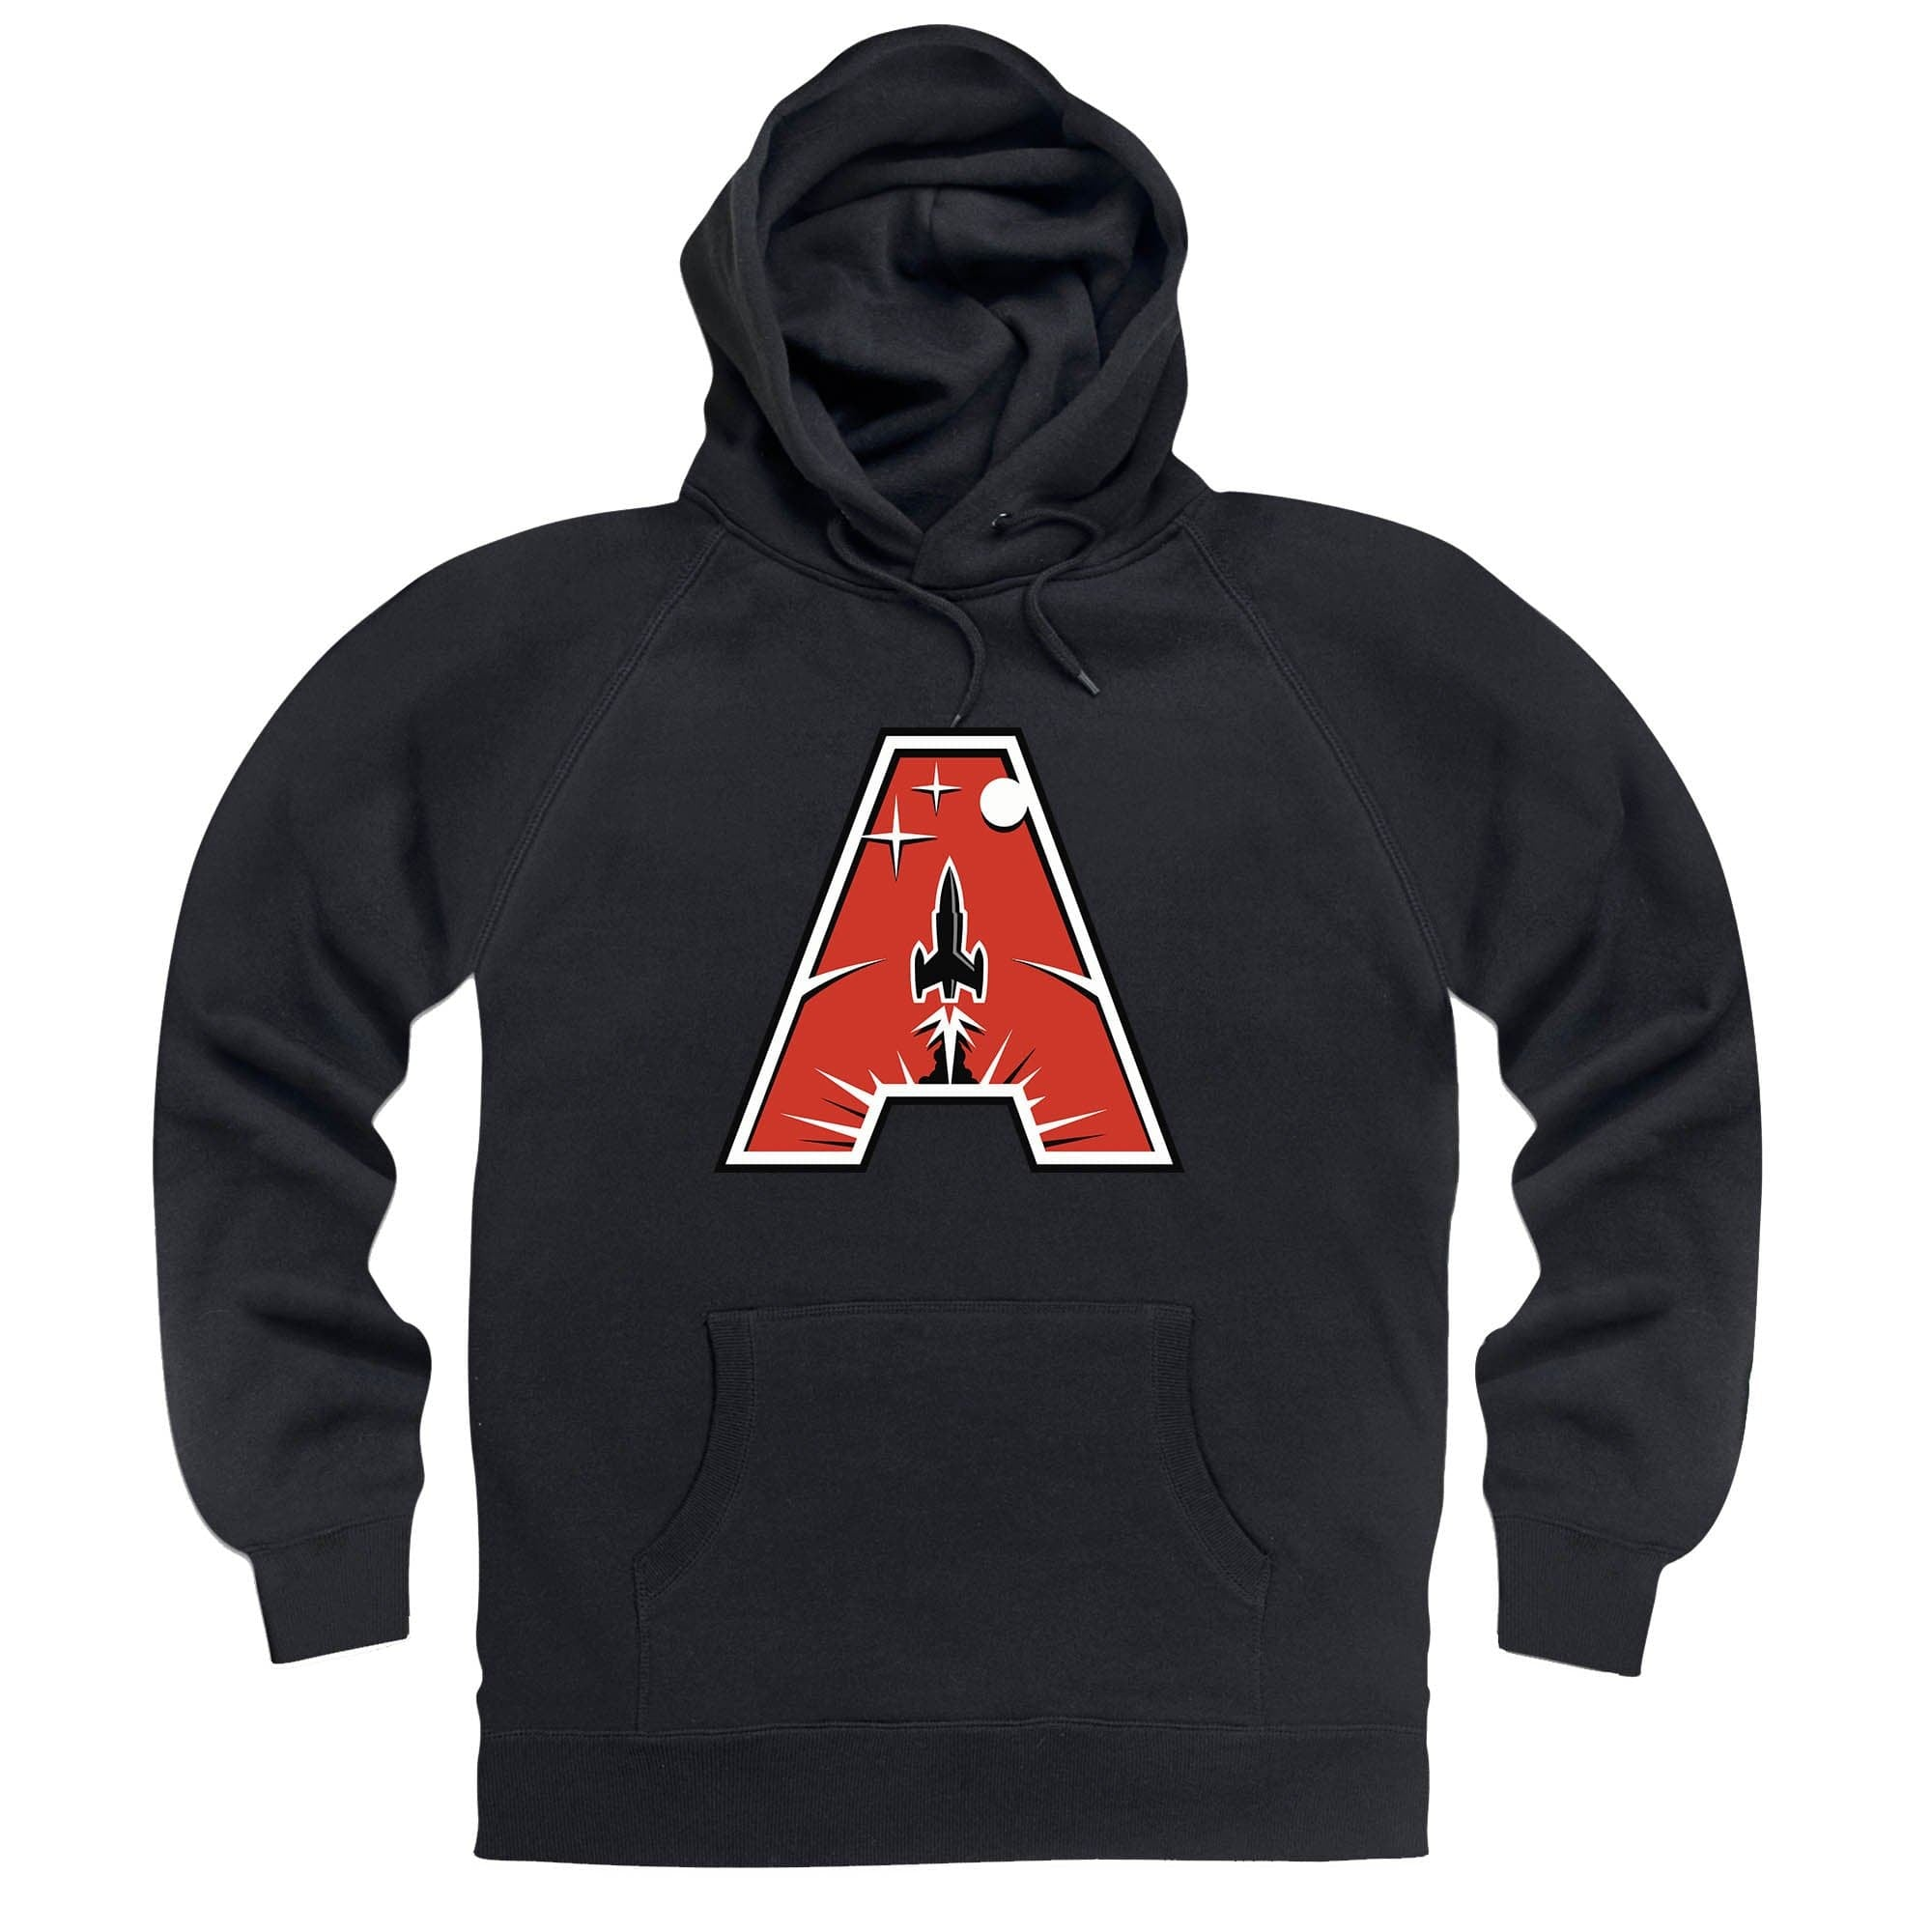 Gerry Anderson 'A' Logo Hoodie [Official & Exclusive] - The Gerry Anderson Store